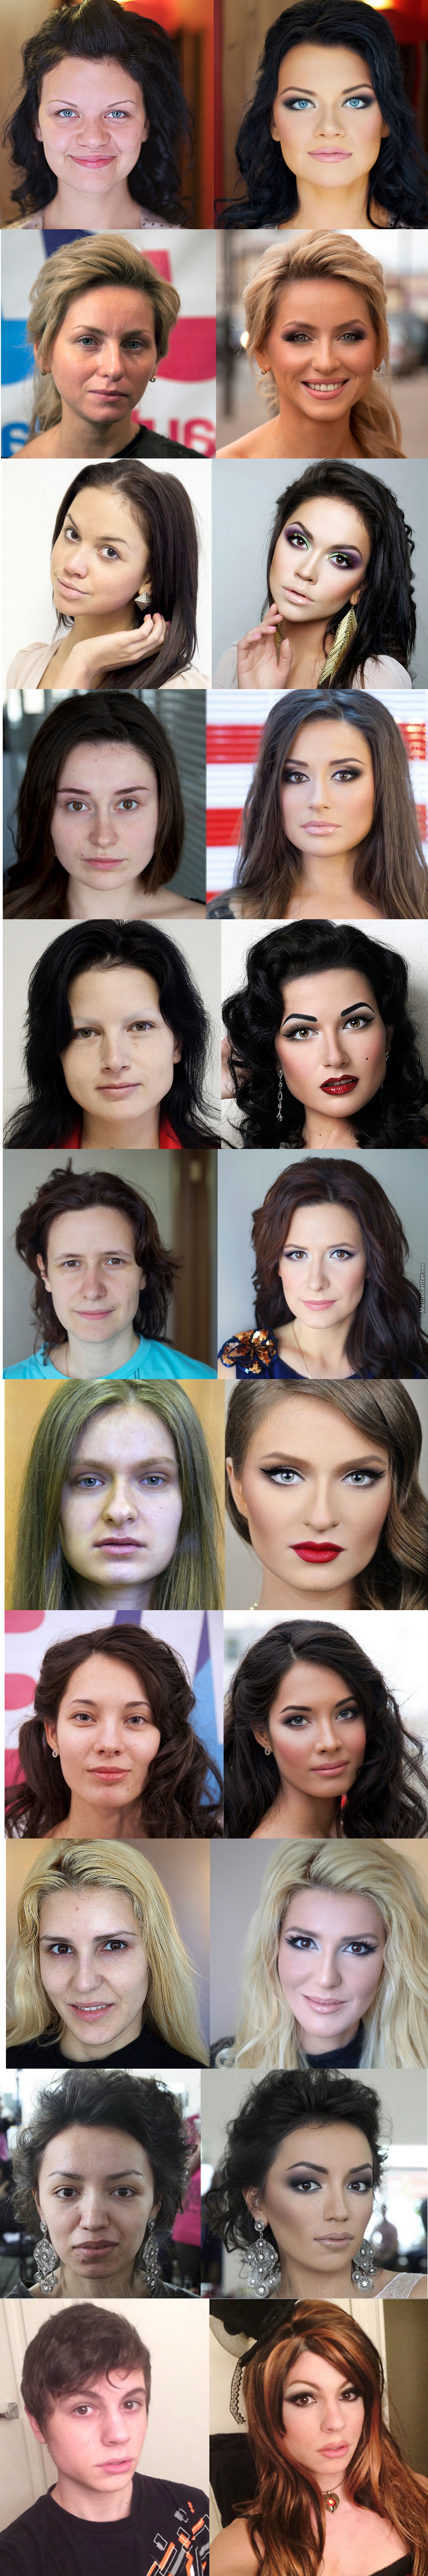 Make Up Party! Before And After